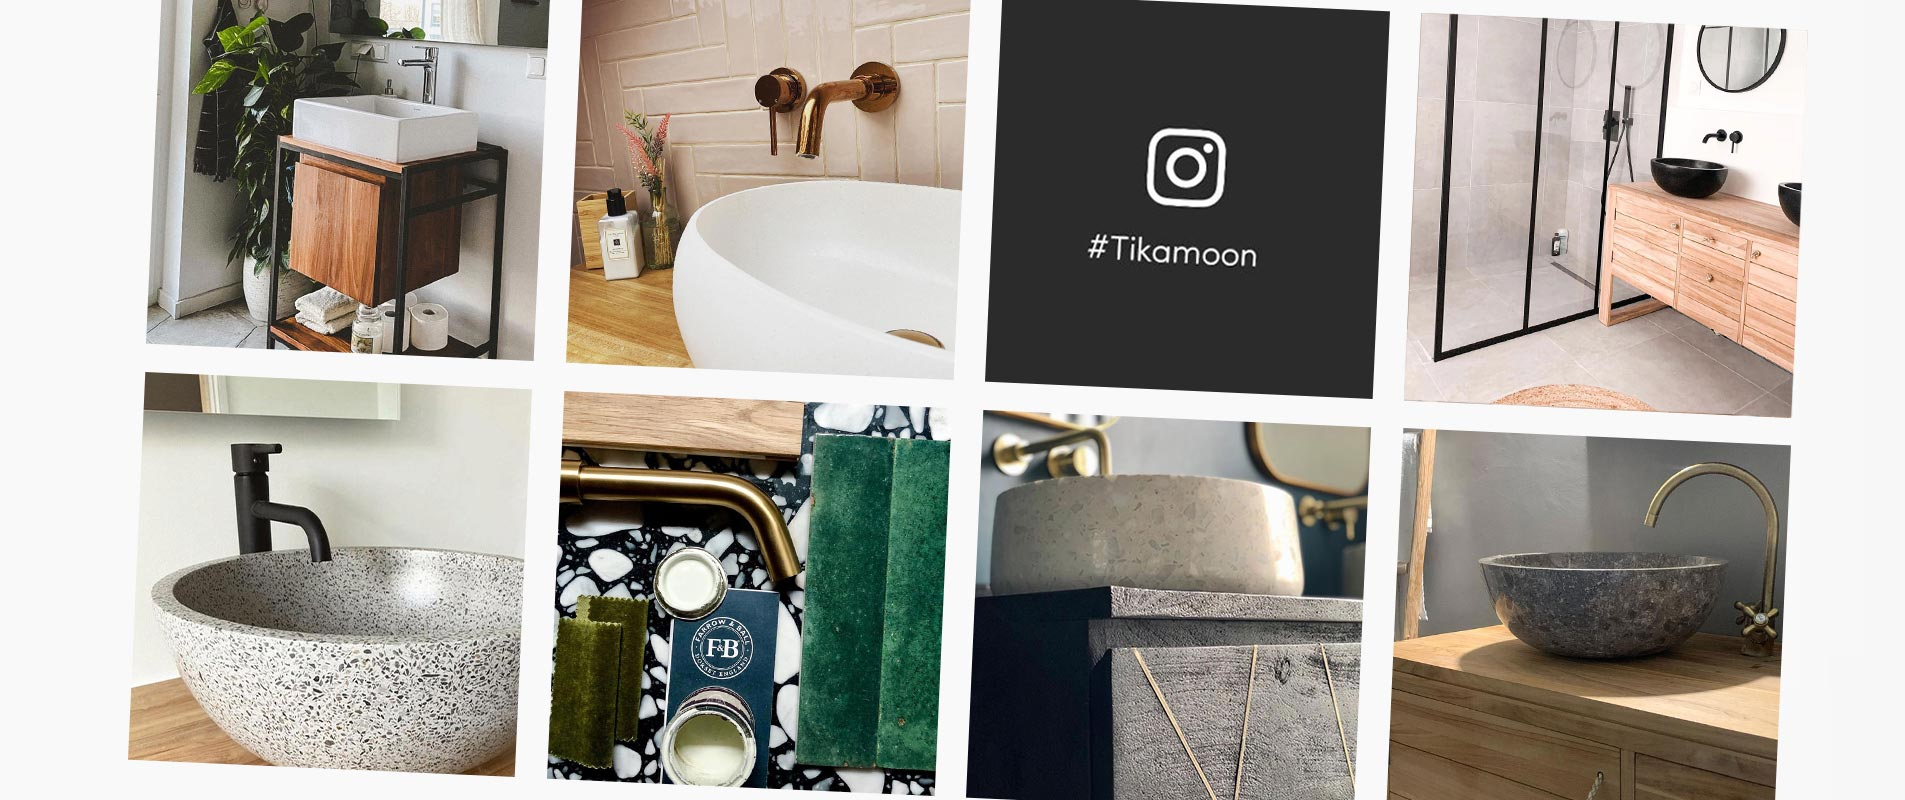 Your take on our washbasins and bathroom furniture